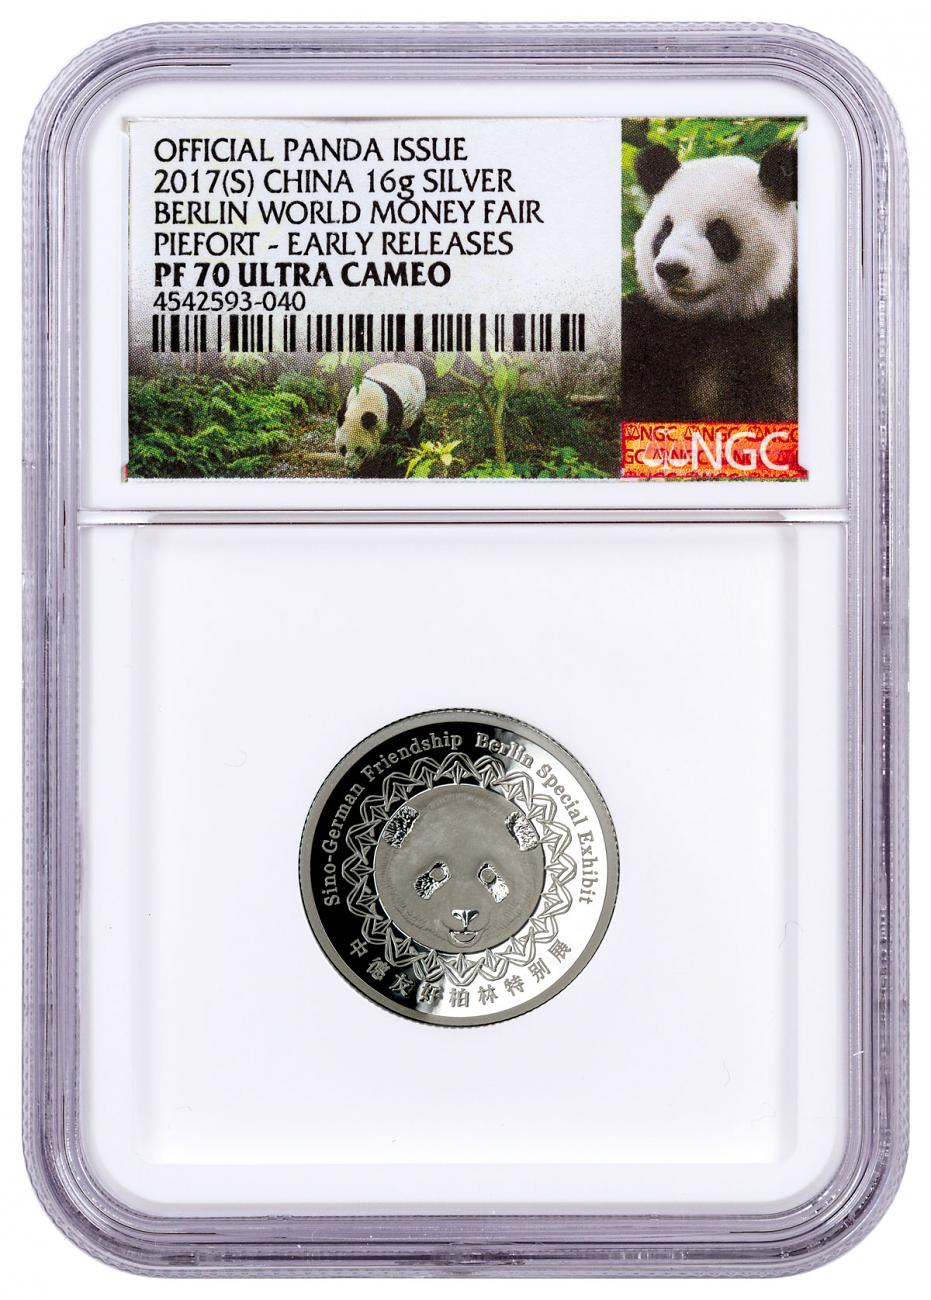 2017-(S) China Berlin World Money Fair 16 g Silver Show Panda Piedfort Proof Medal NGC PF70 UC ER Exclusive Panda Label